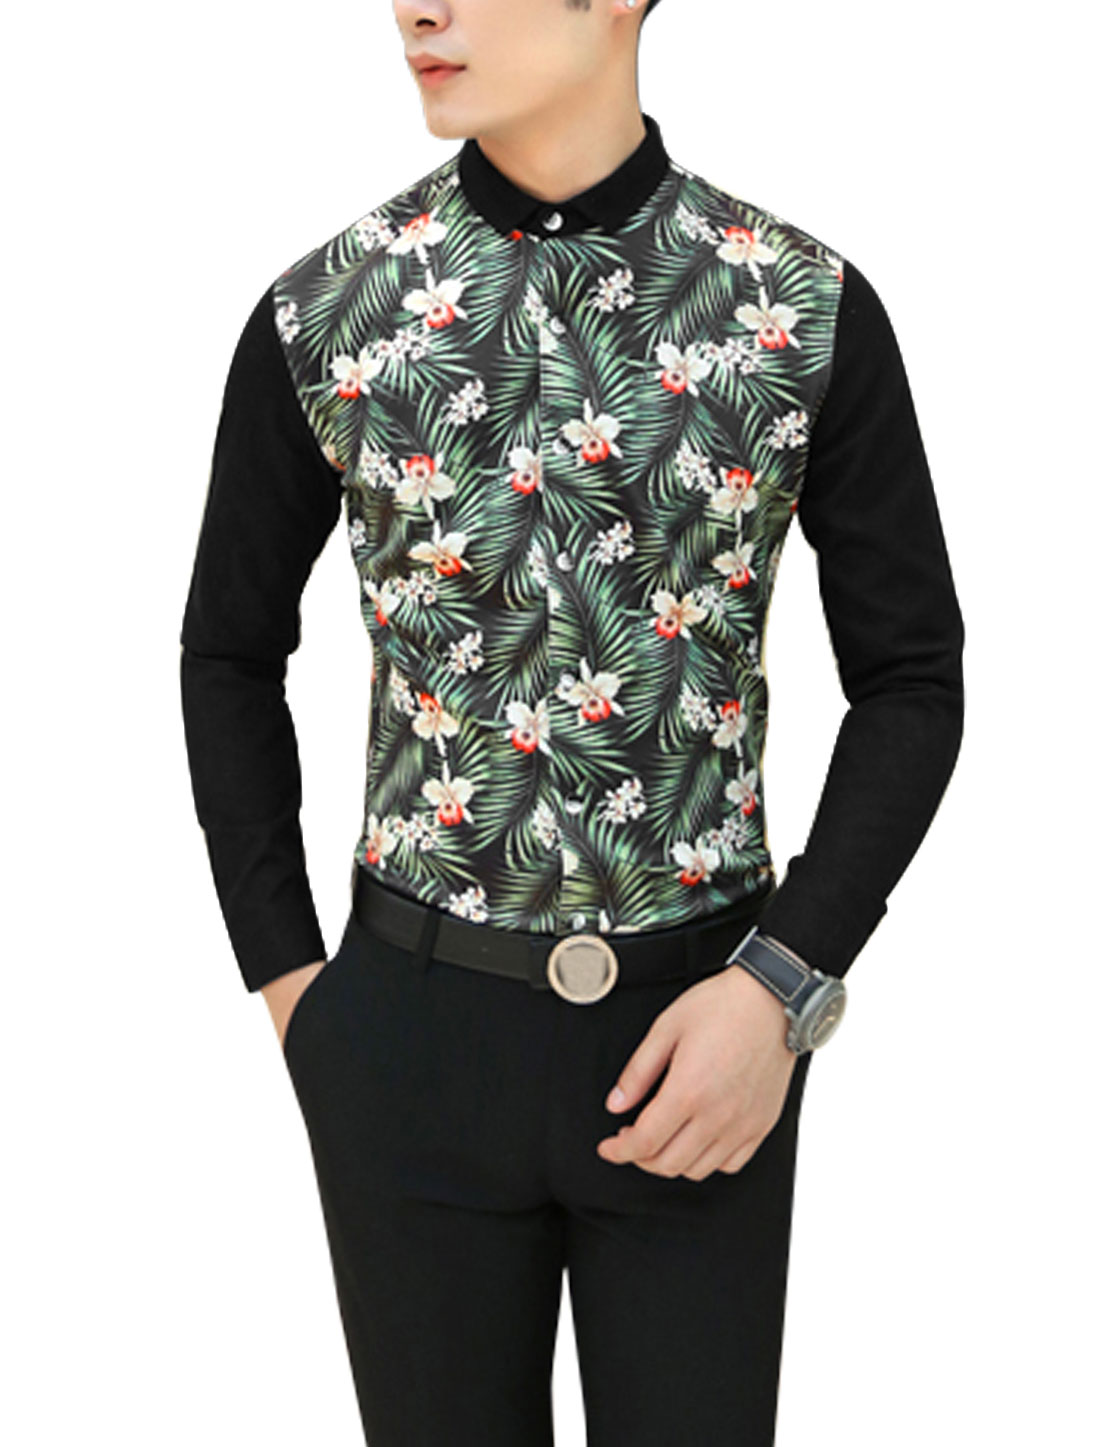 Men Floral Leaves Pattern Button Closure Front Shirt Black Green S